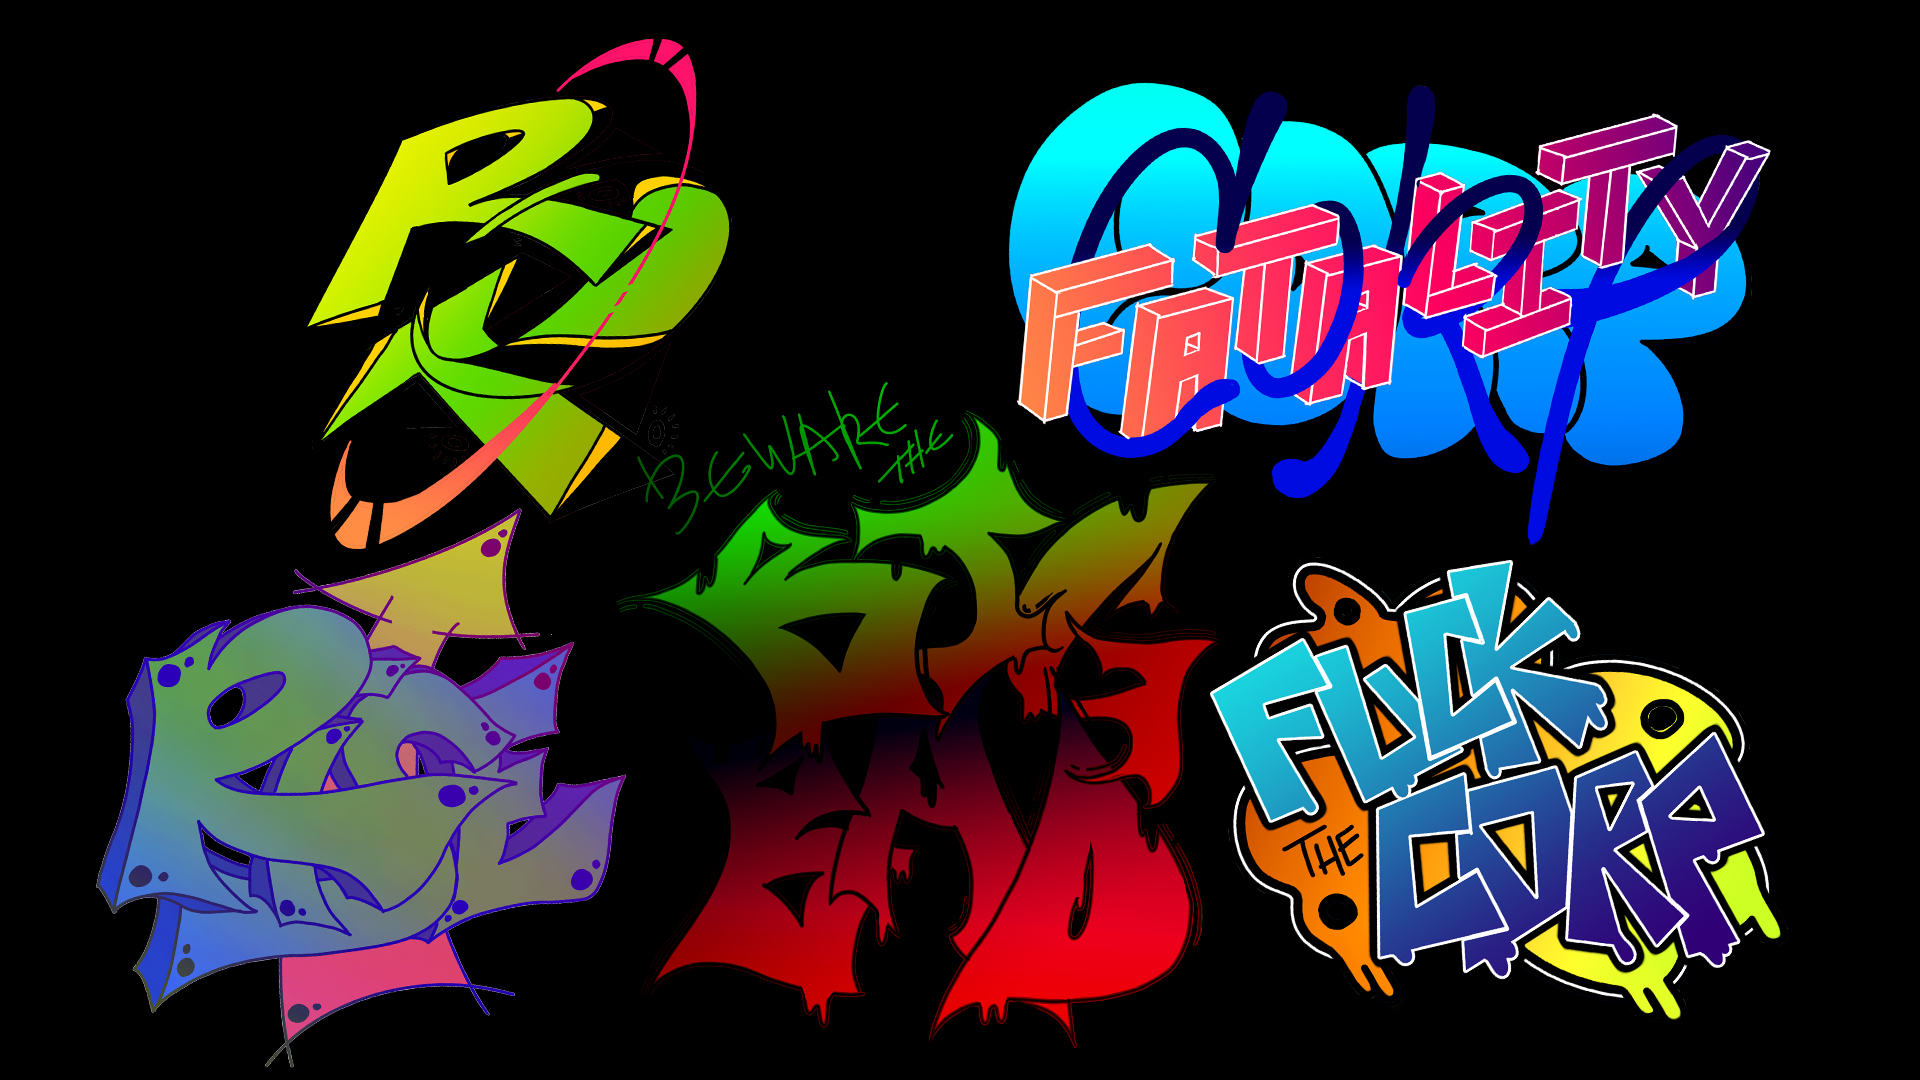 Decal Design : Graffiti